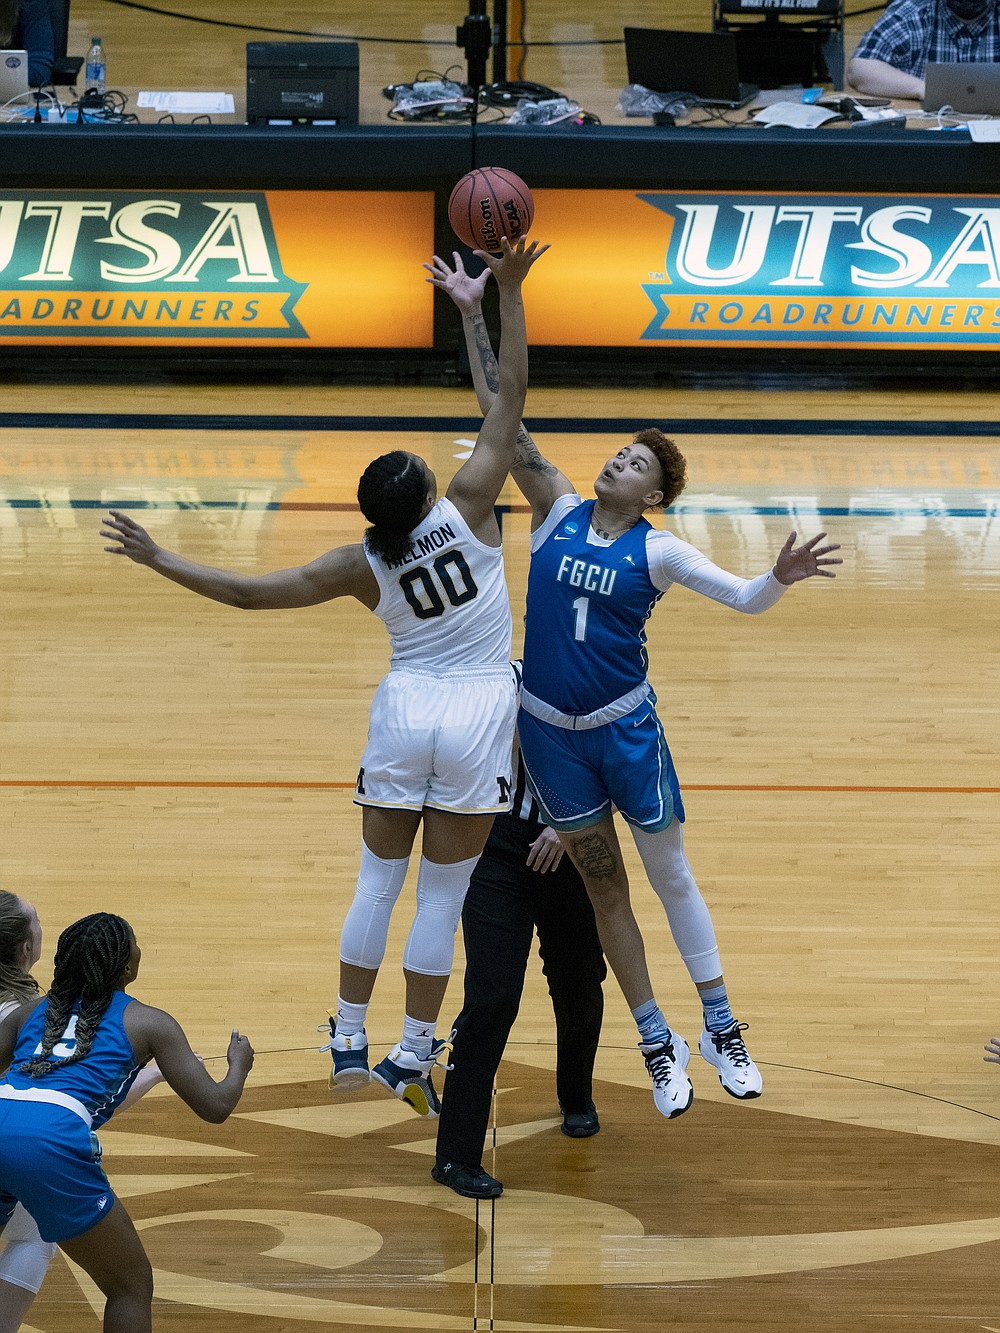 Michigan forward Naz Hilmon (00) jumps the opening tip-off against Florida Gulf Coast guard Kierstan Bell (1) during the first quarter of a college basketball game in the first round of the women's NCAA tournament at the University of Texas San Antonio Convocation Center in San Antonio, Texas, Sunday March 21, 2021. (AP Photo/Michael Thomas)